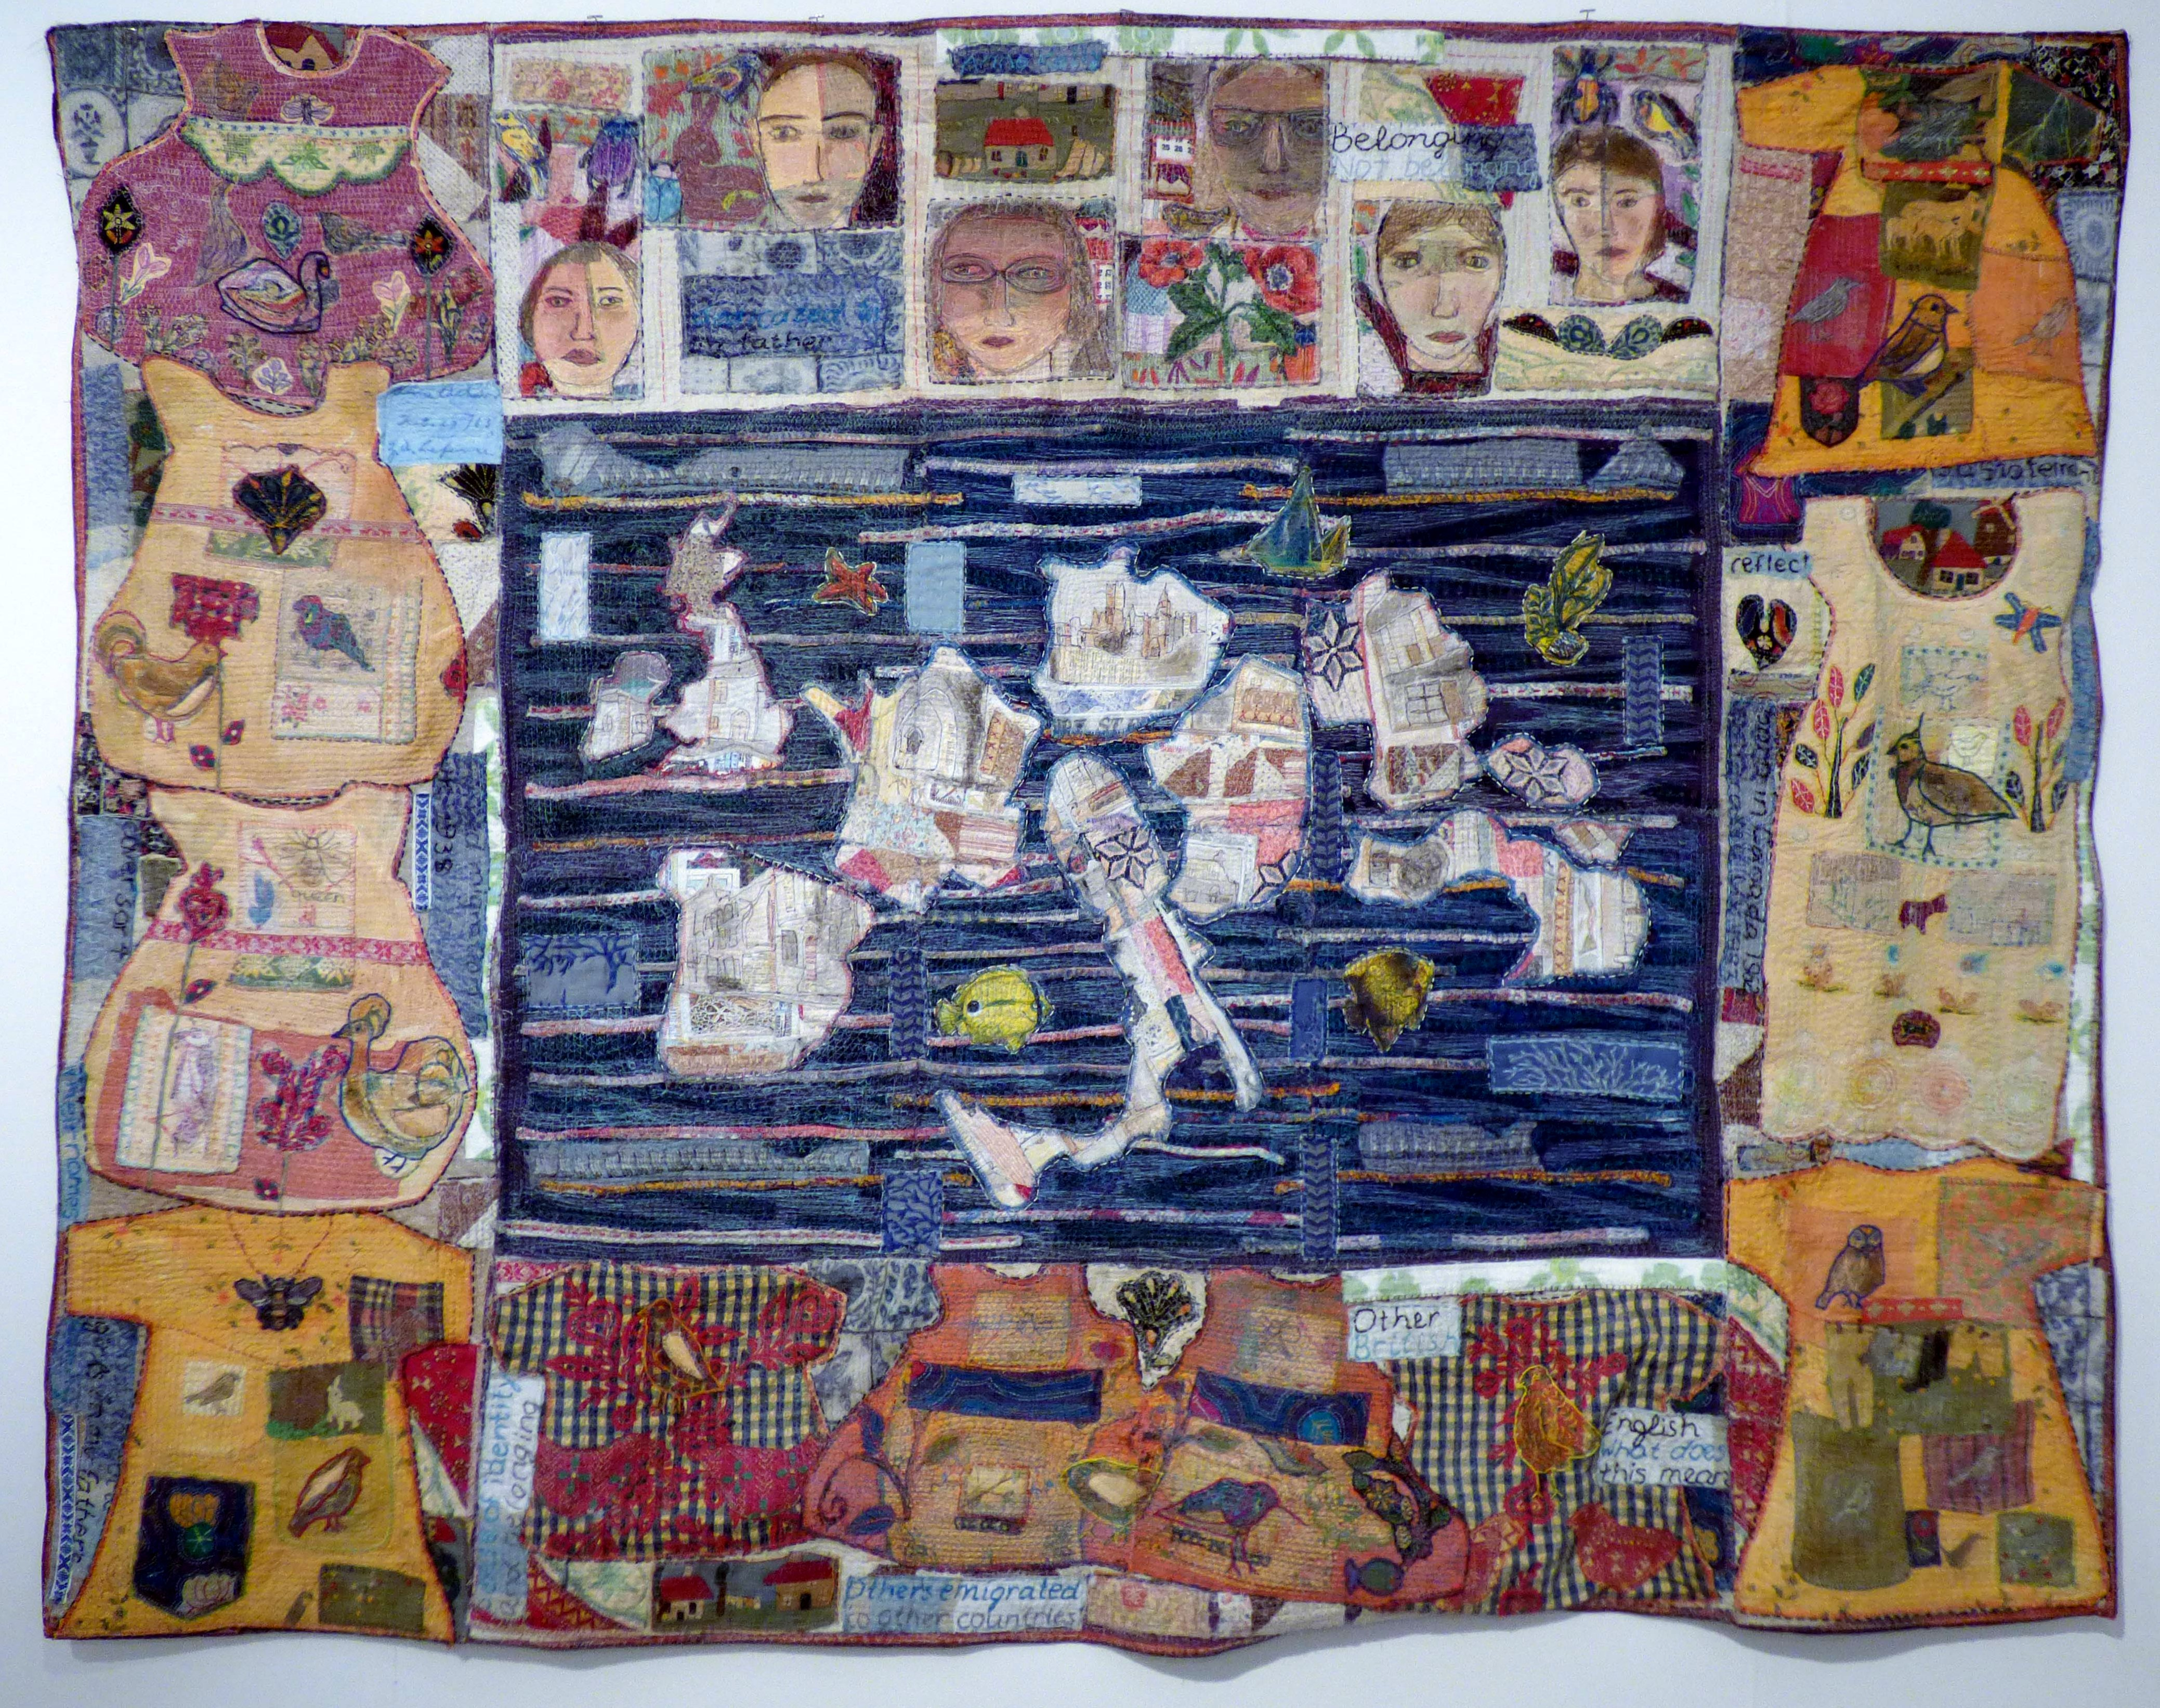 EUROPEANS, mixed media textiles by Anne Kelly, Ruthin Craft Gallery, July 2021